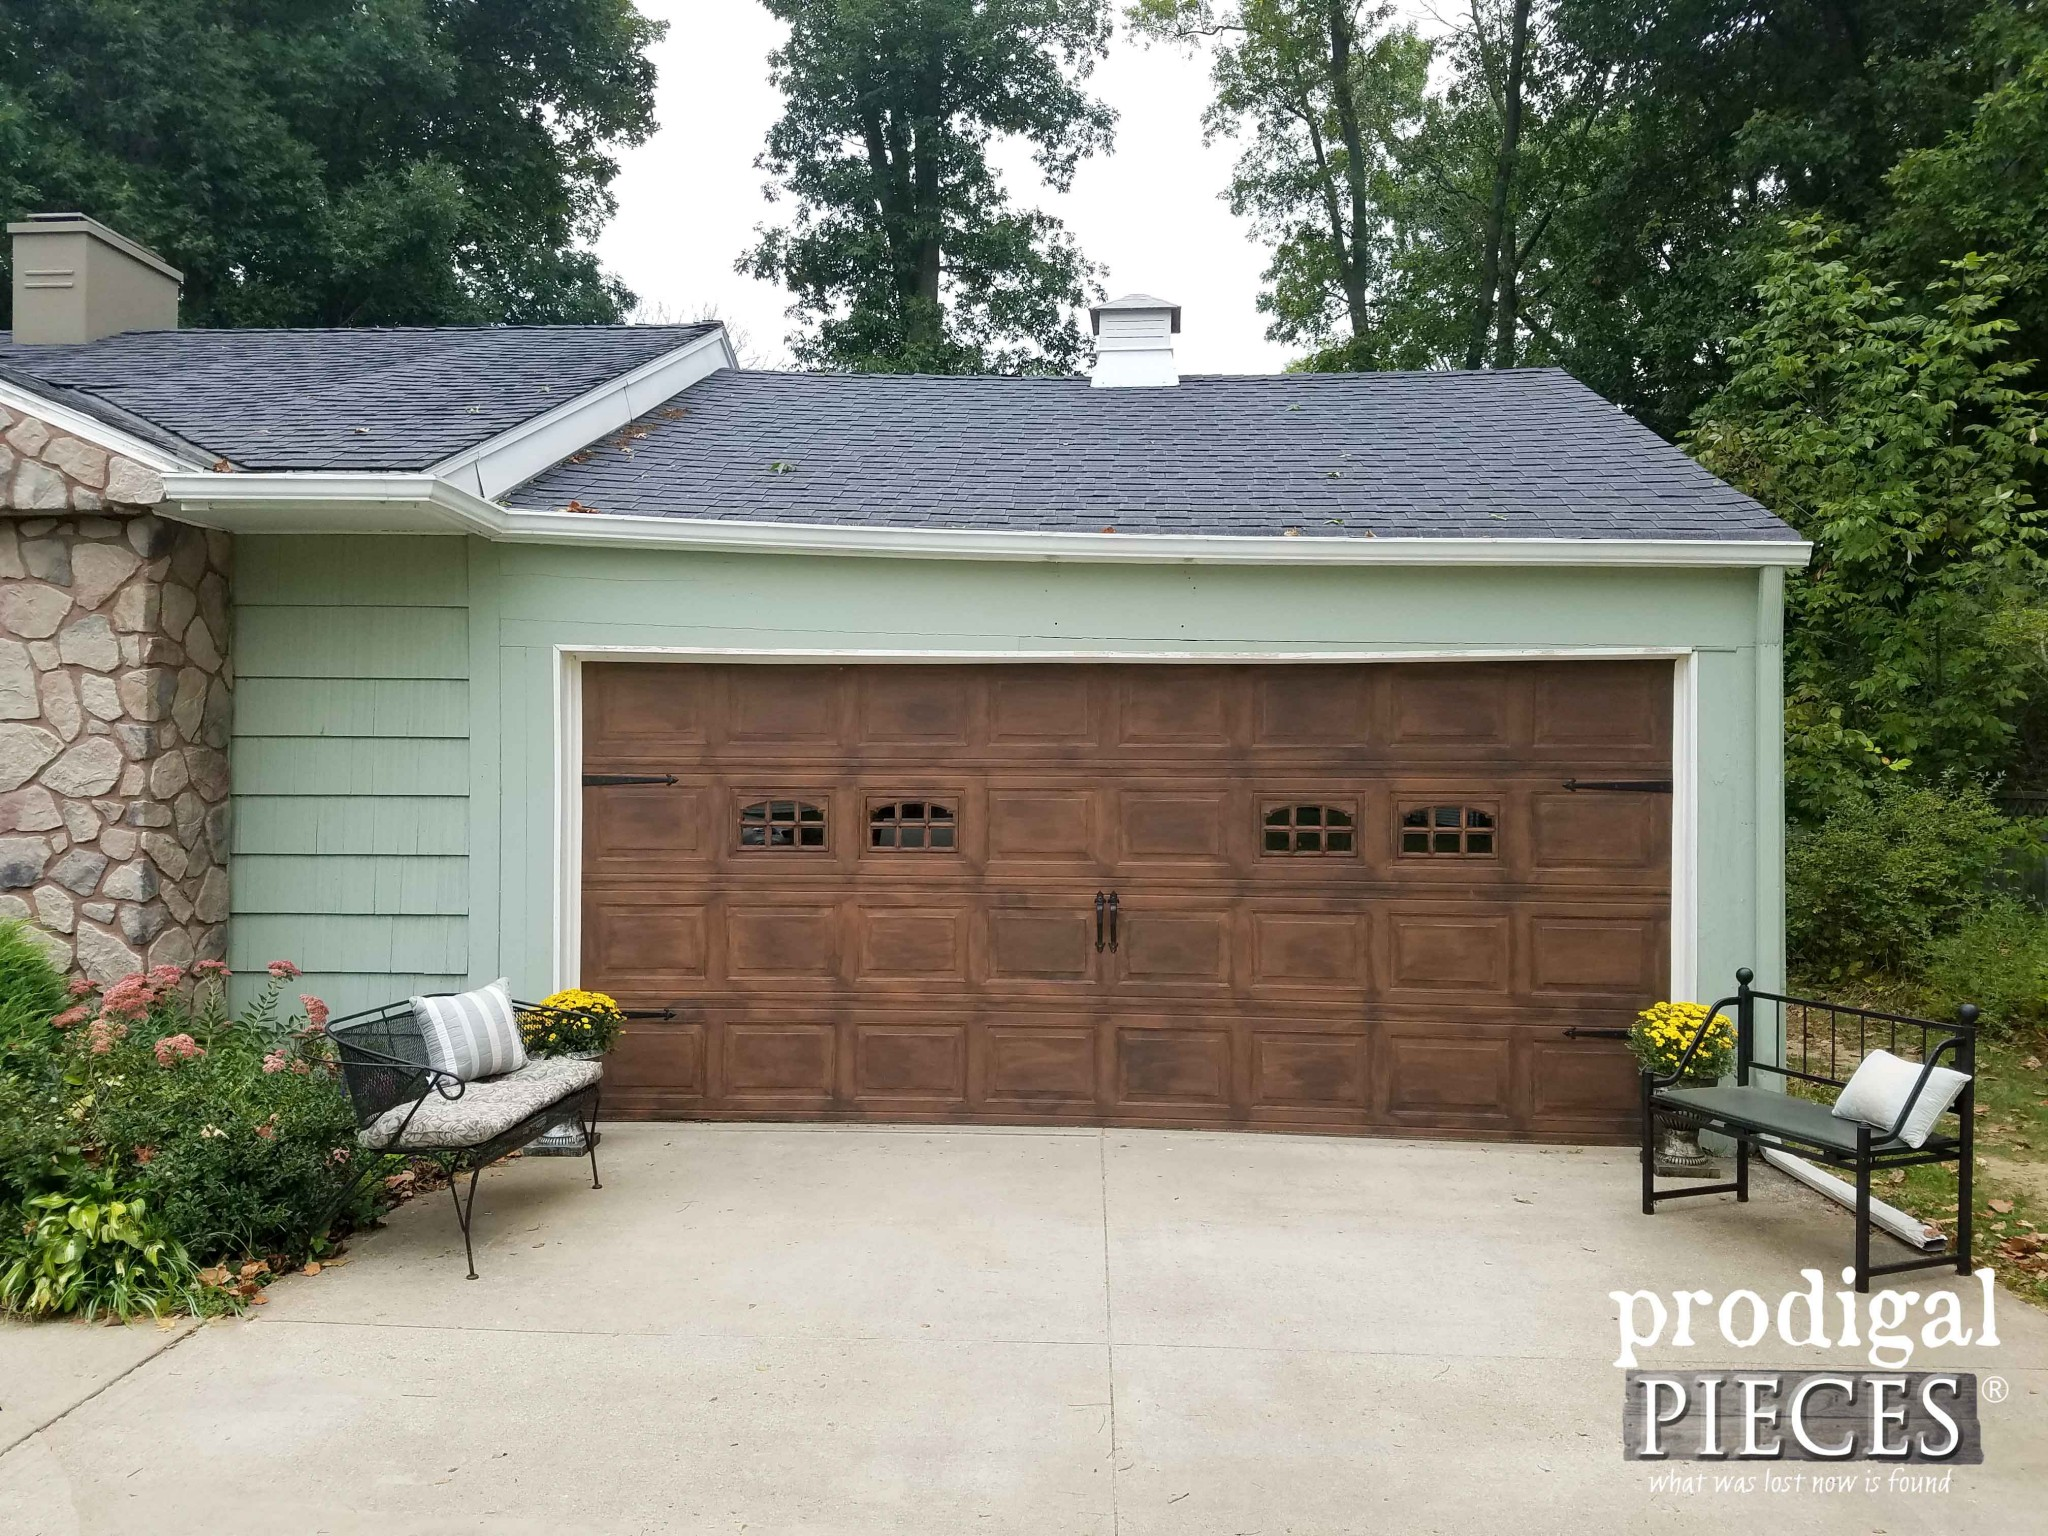 Faux Wood Garage Door Update by Prodigal Pieces | www.prodigalpieces.com